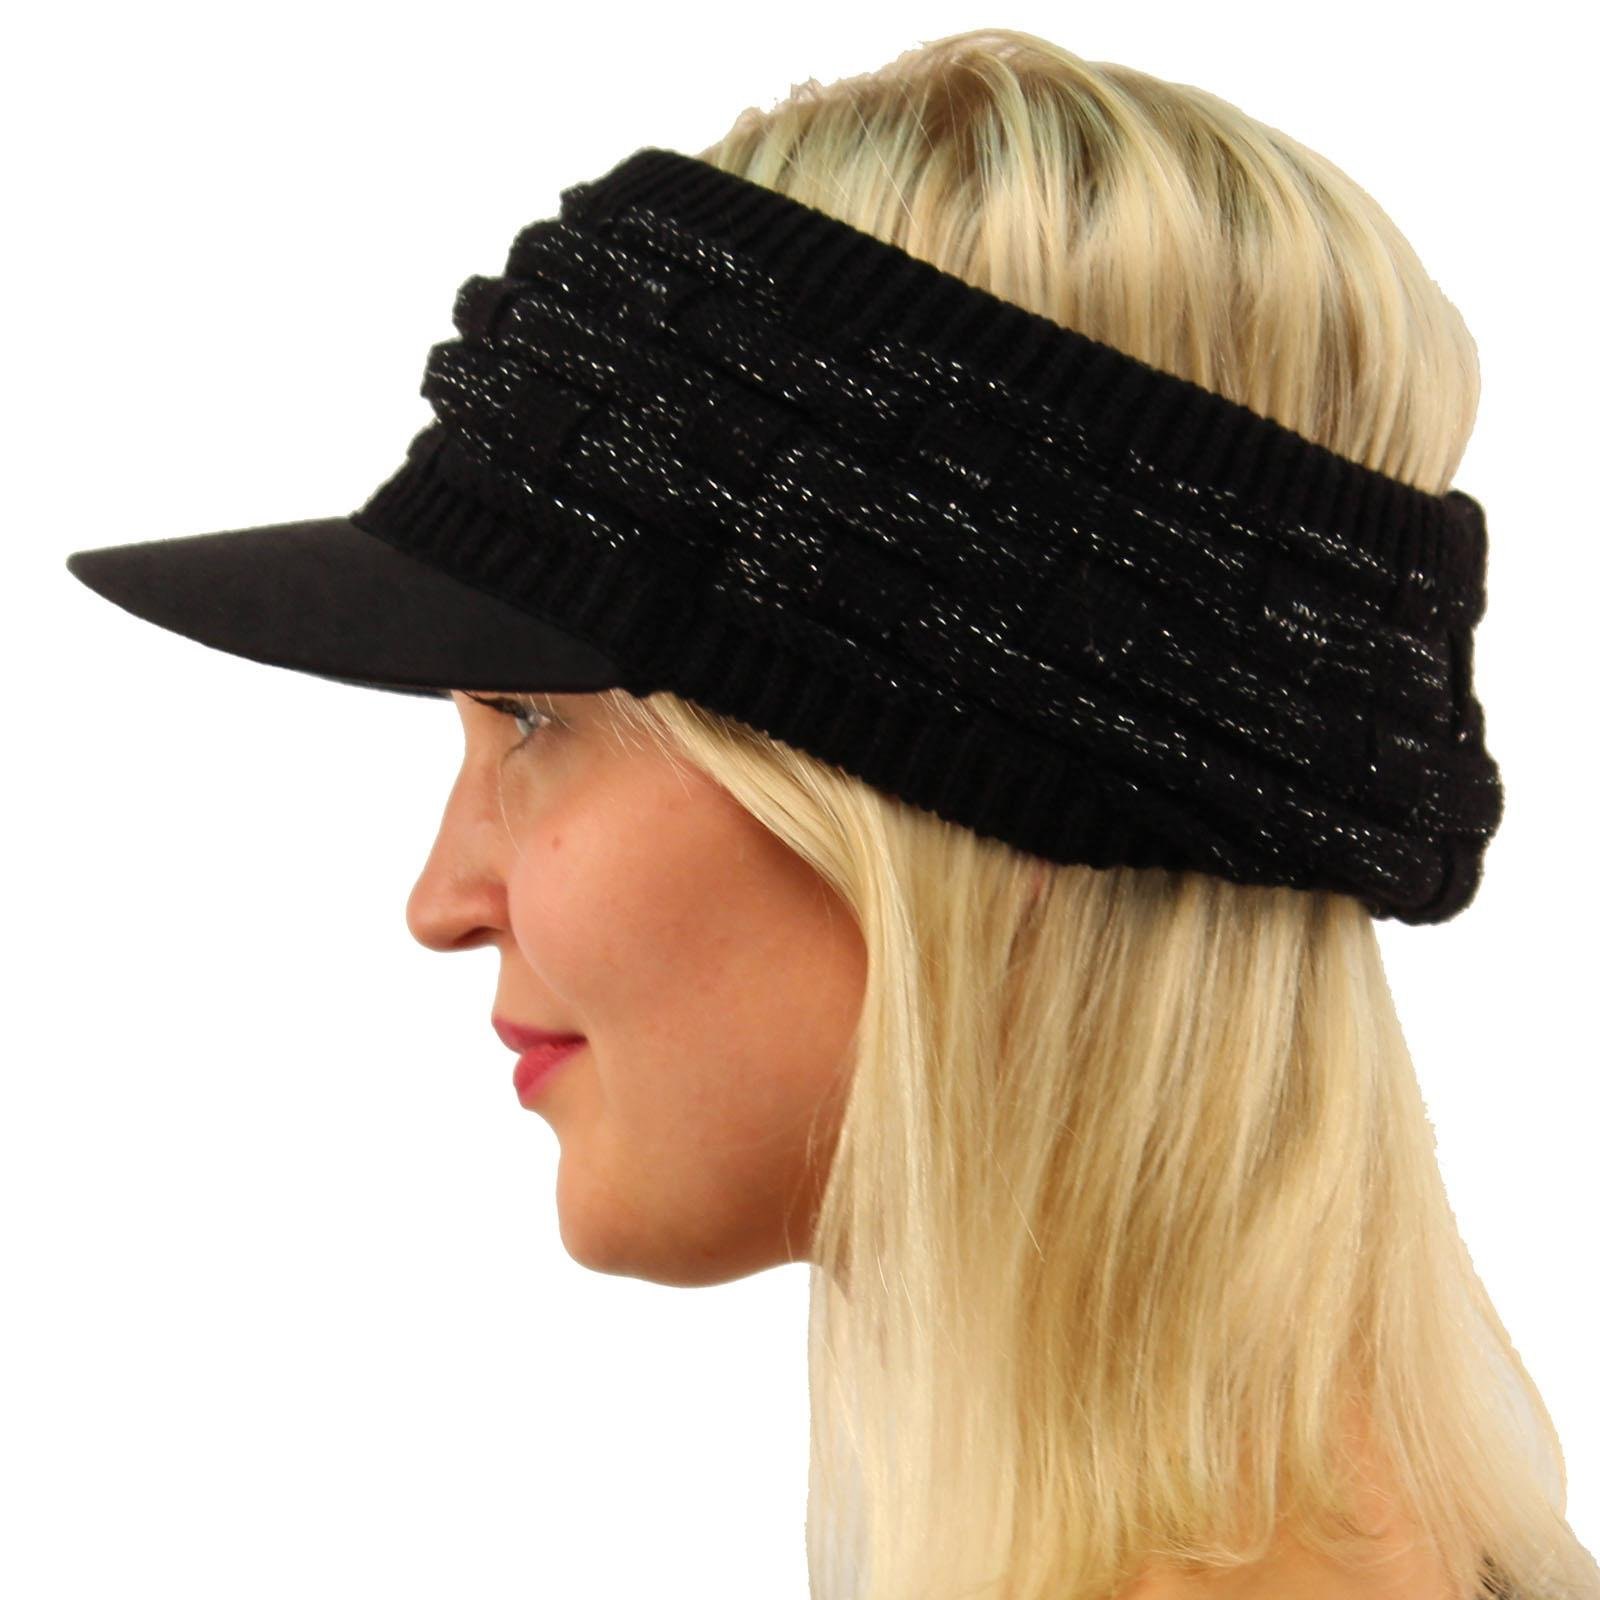 Winter Open Top 2ply Thick Knit Headband Faux Suede Visor Beanie Hat Cap Black